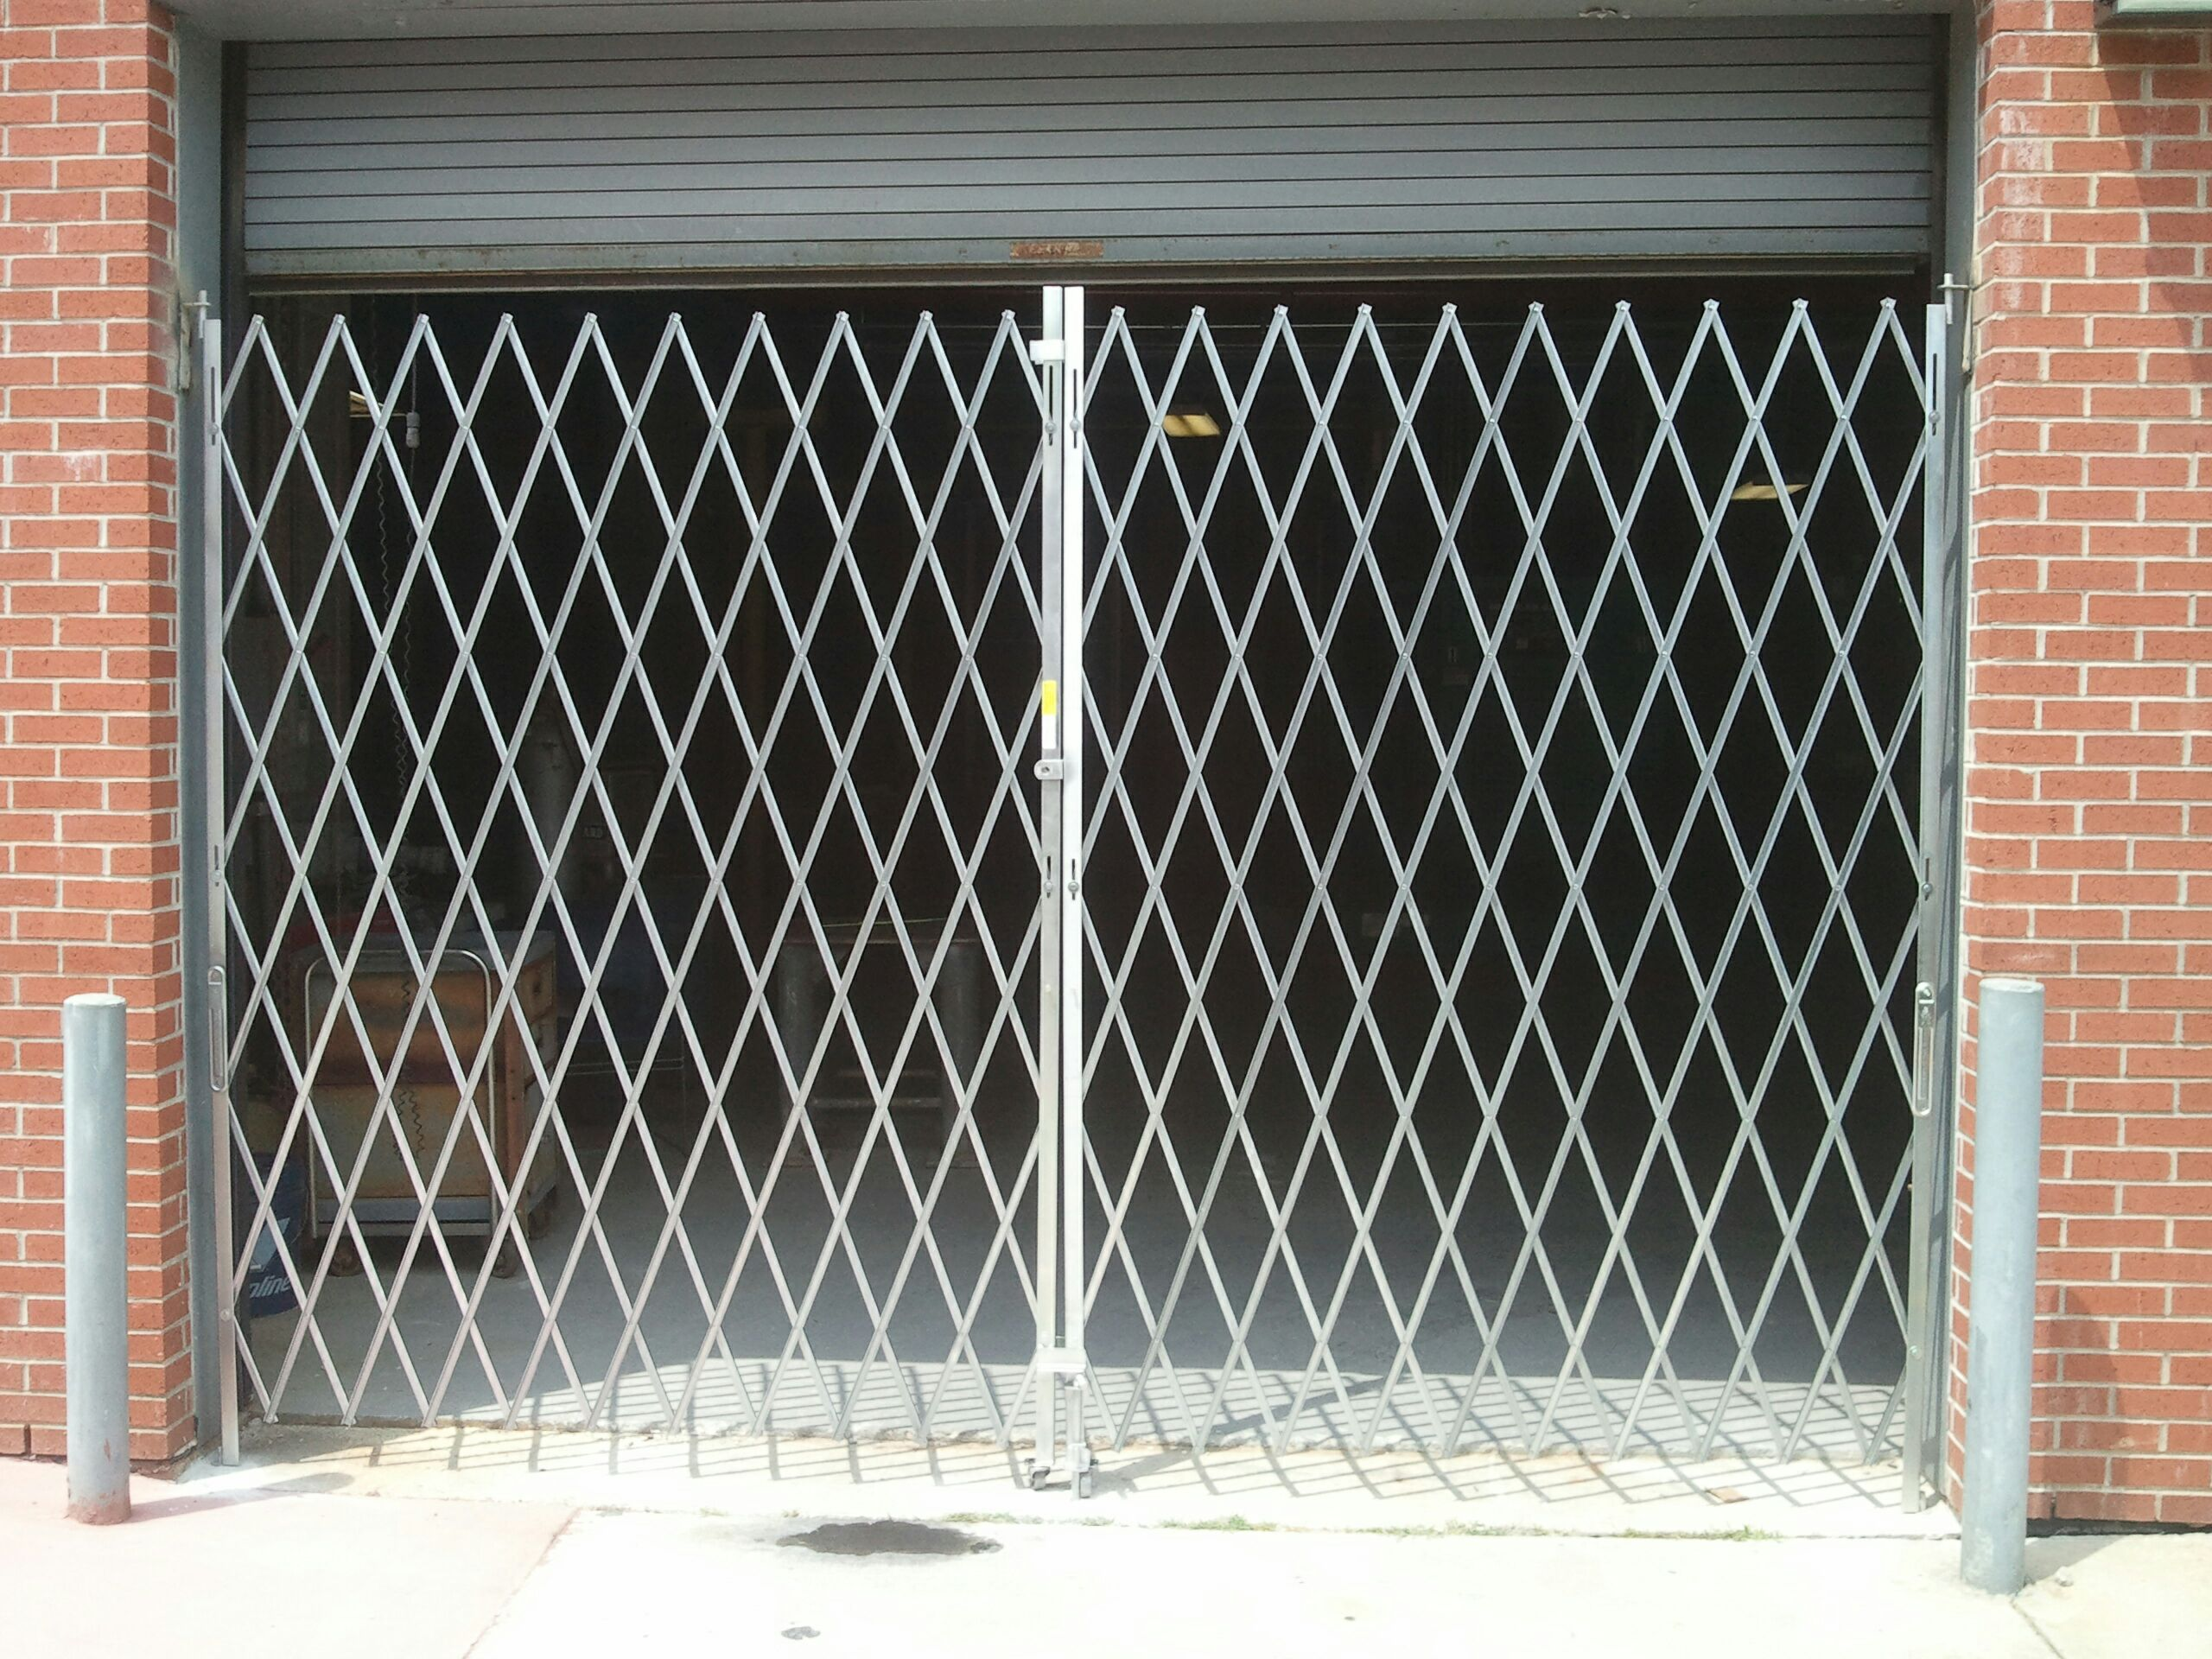 Scissor Security Gate